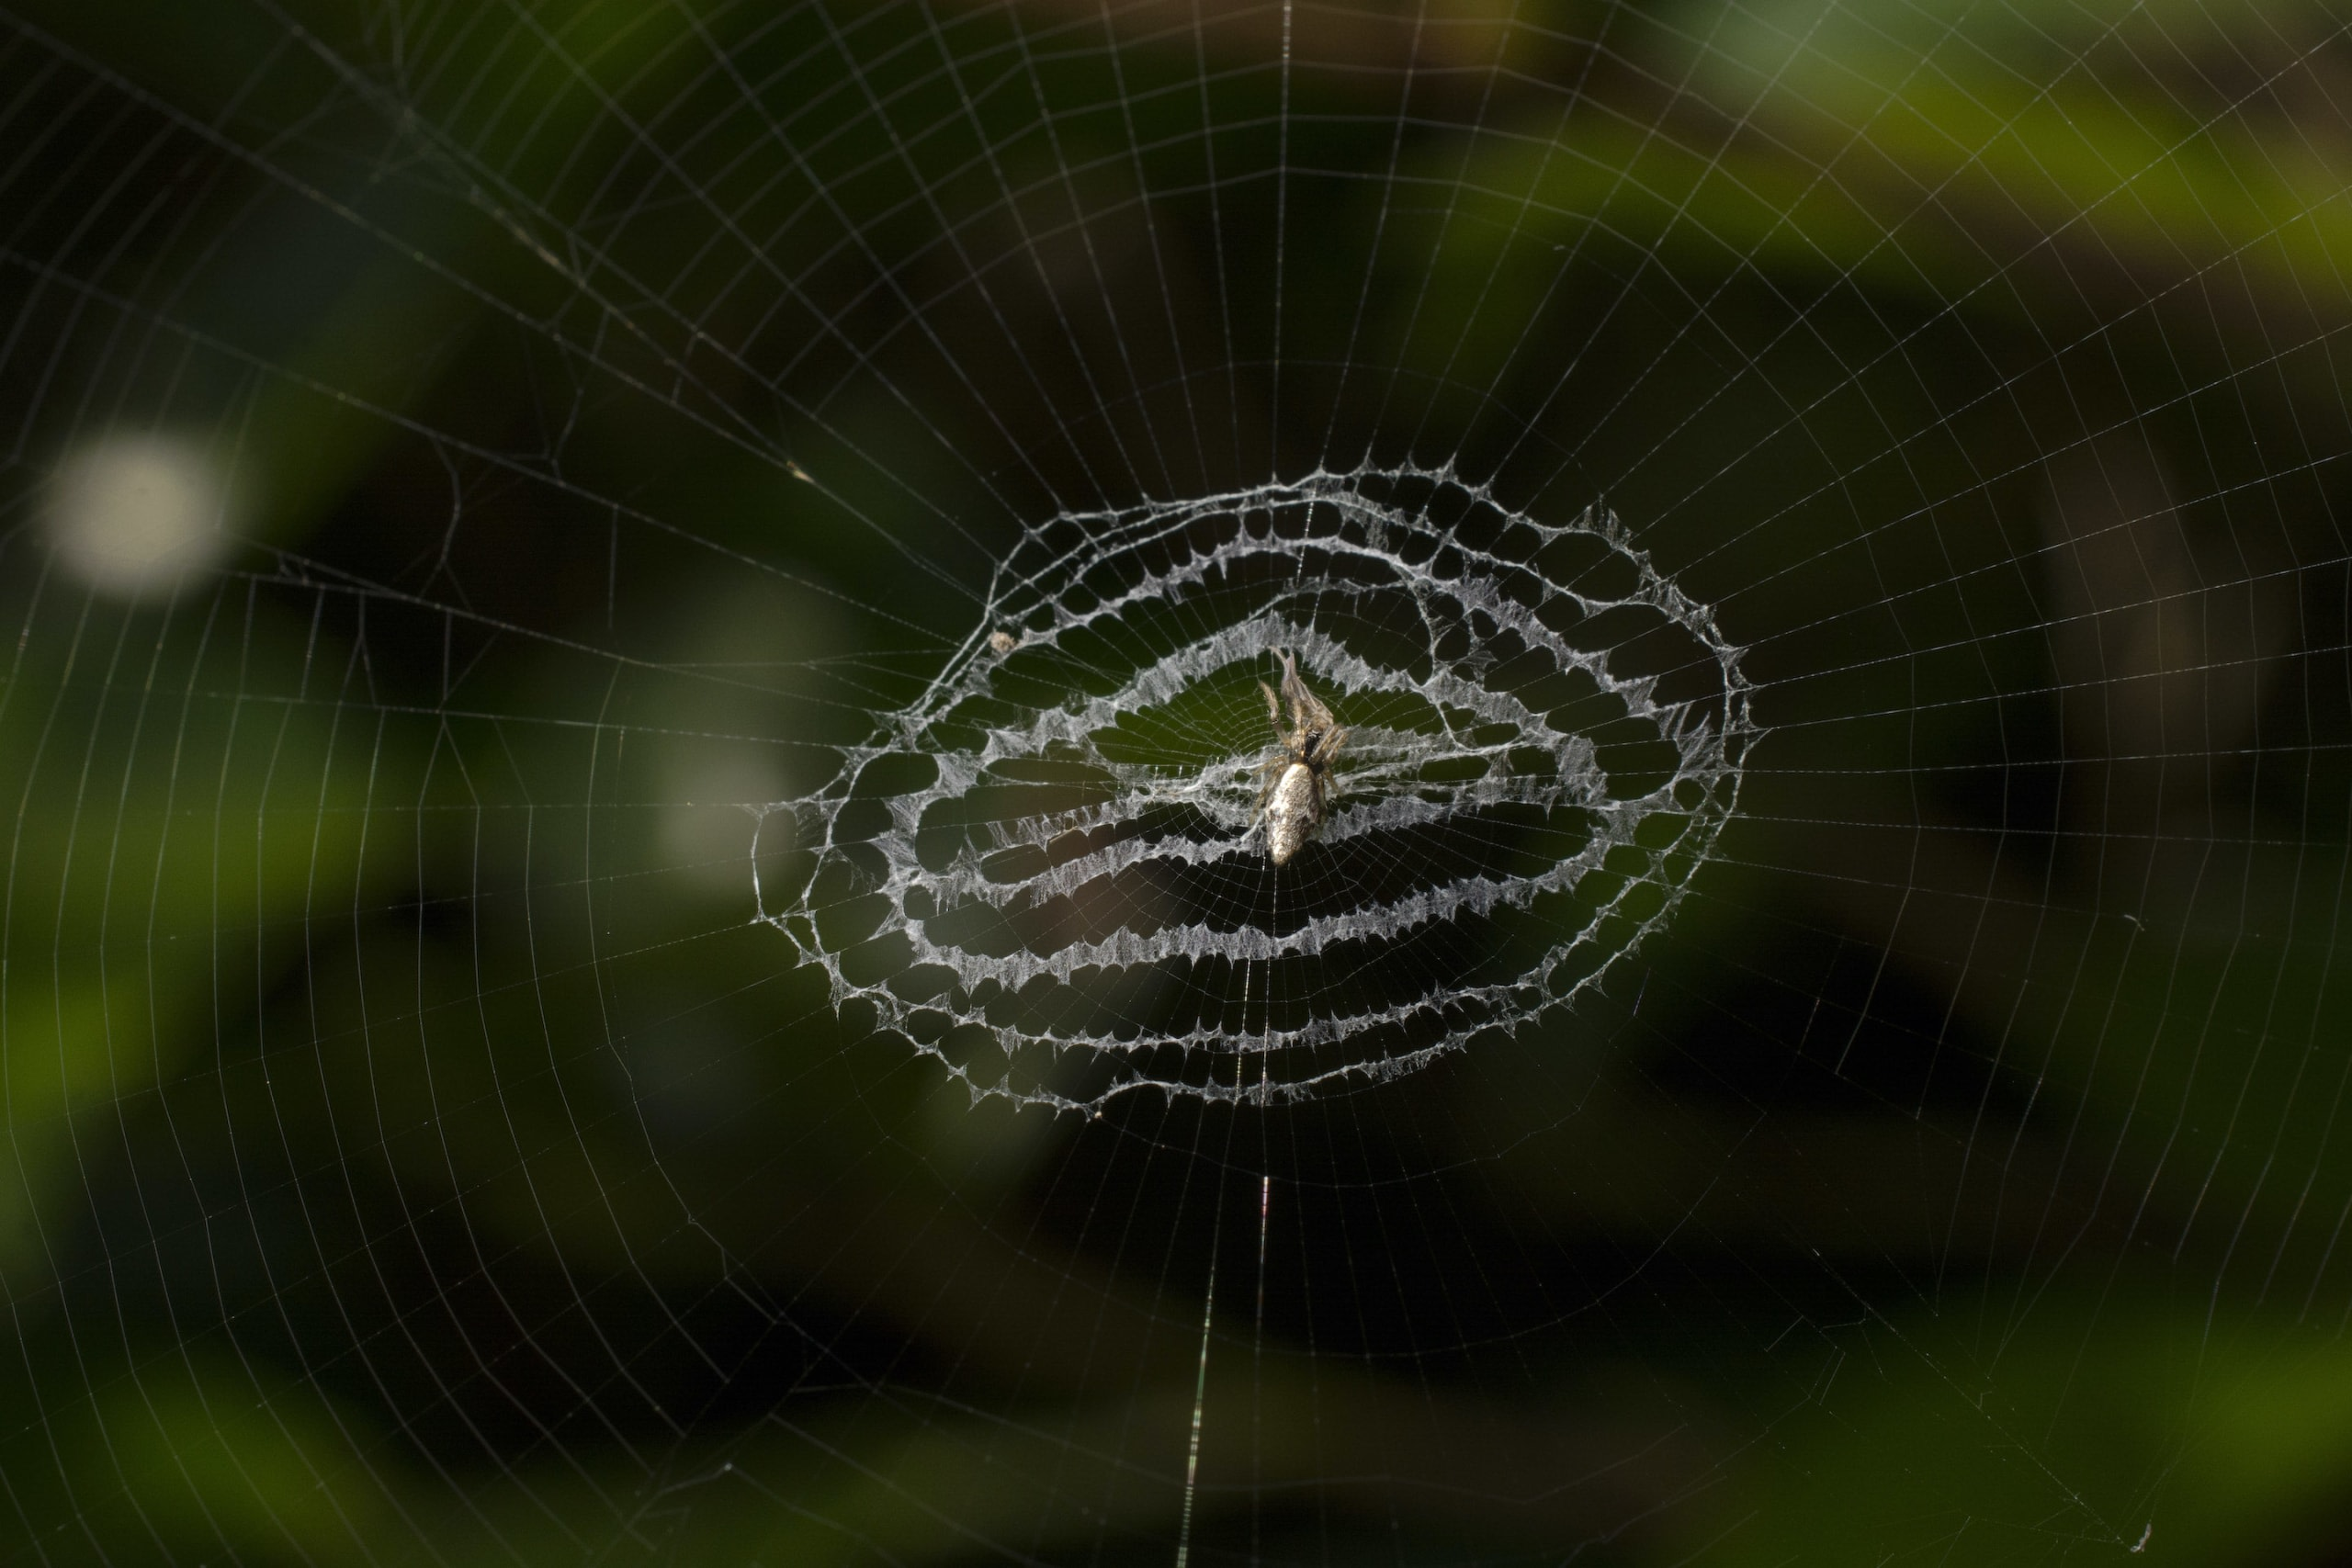 Spiders in the genus Cyclosa decorate their orb-webs with silken structures called stabilimenta. These structures work as a mode of camouflage for the spider. Photo: Samuel John